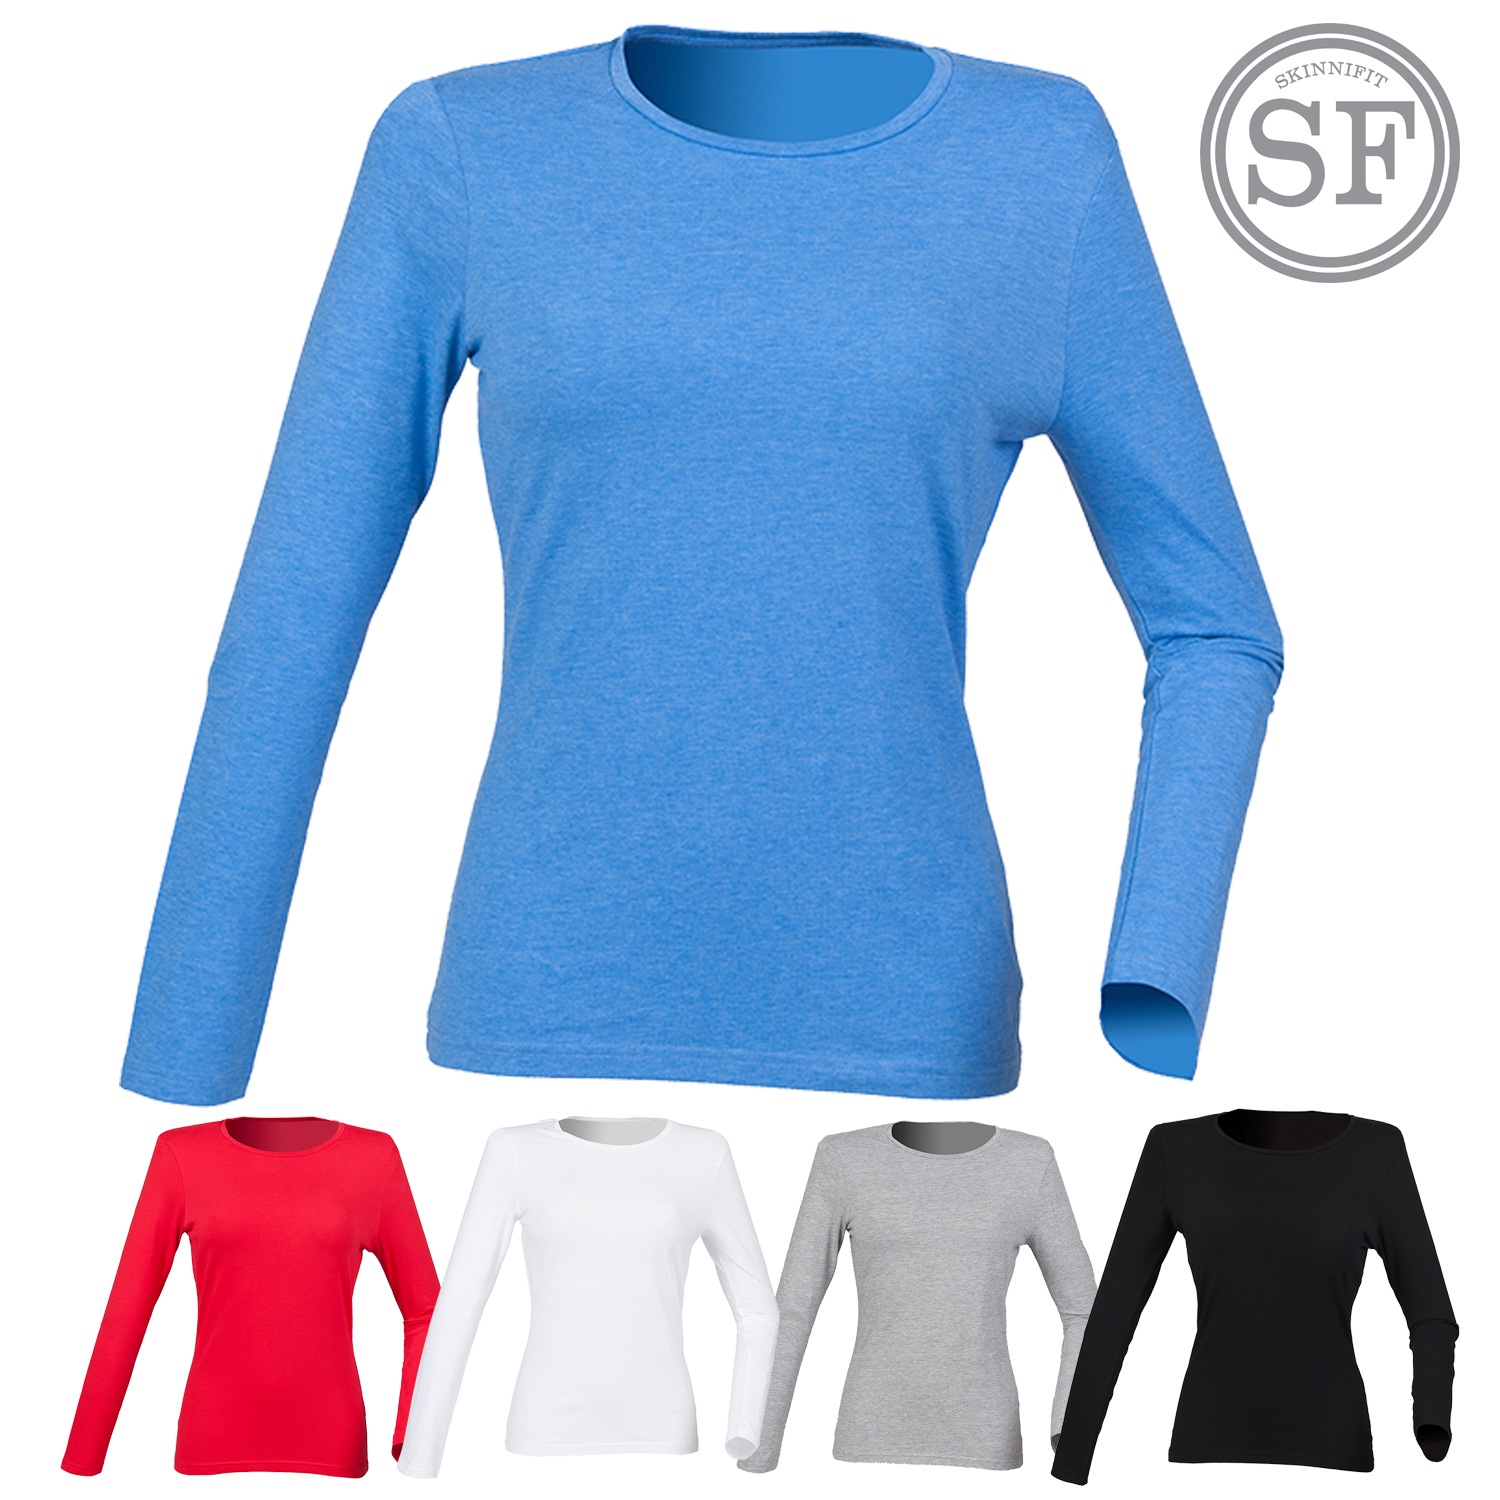 a237ec1ca462c Details about SF Women s Long Sleeve Crew Neck Stretch T-Shirt Ladies Tee  Plain Casual Top New